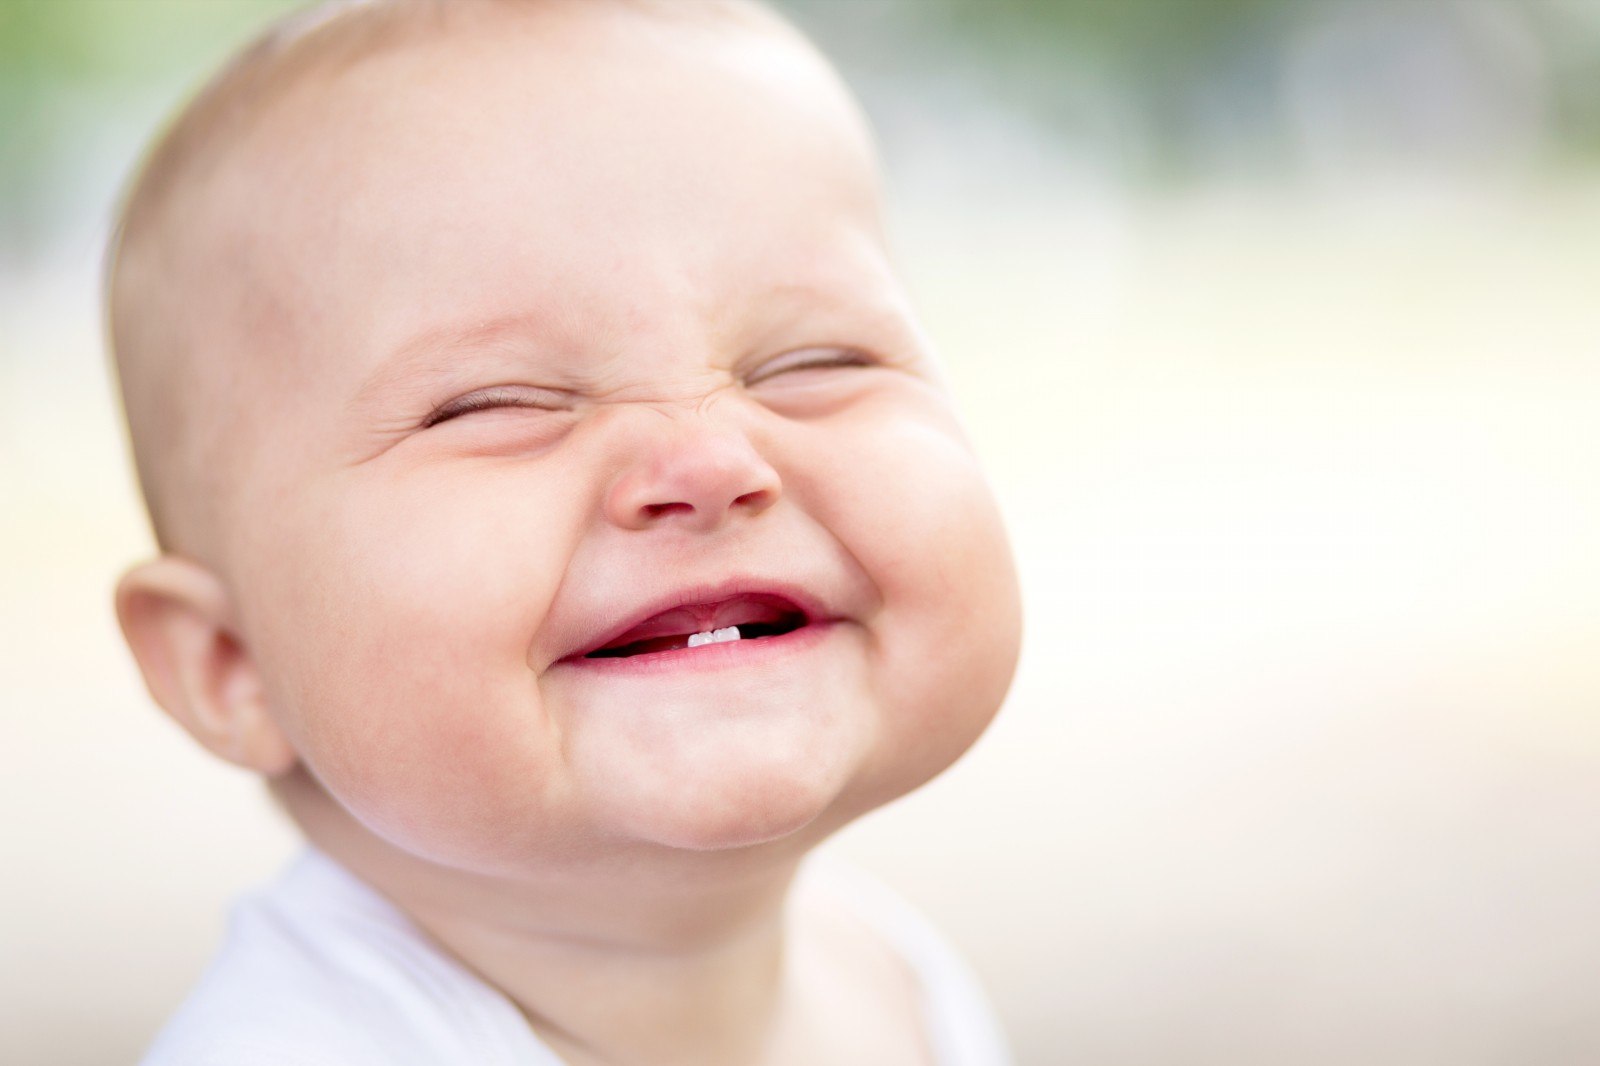 Cute Funny Smiling Baby Face Wallpaper